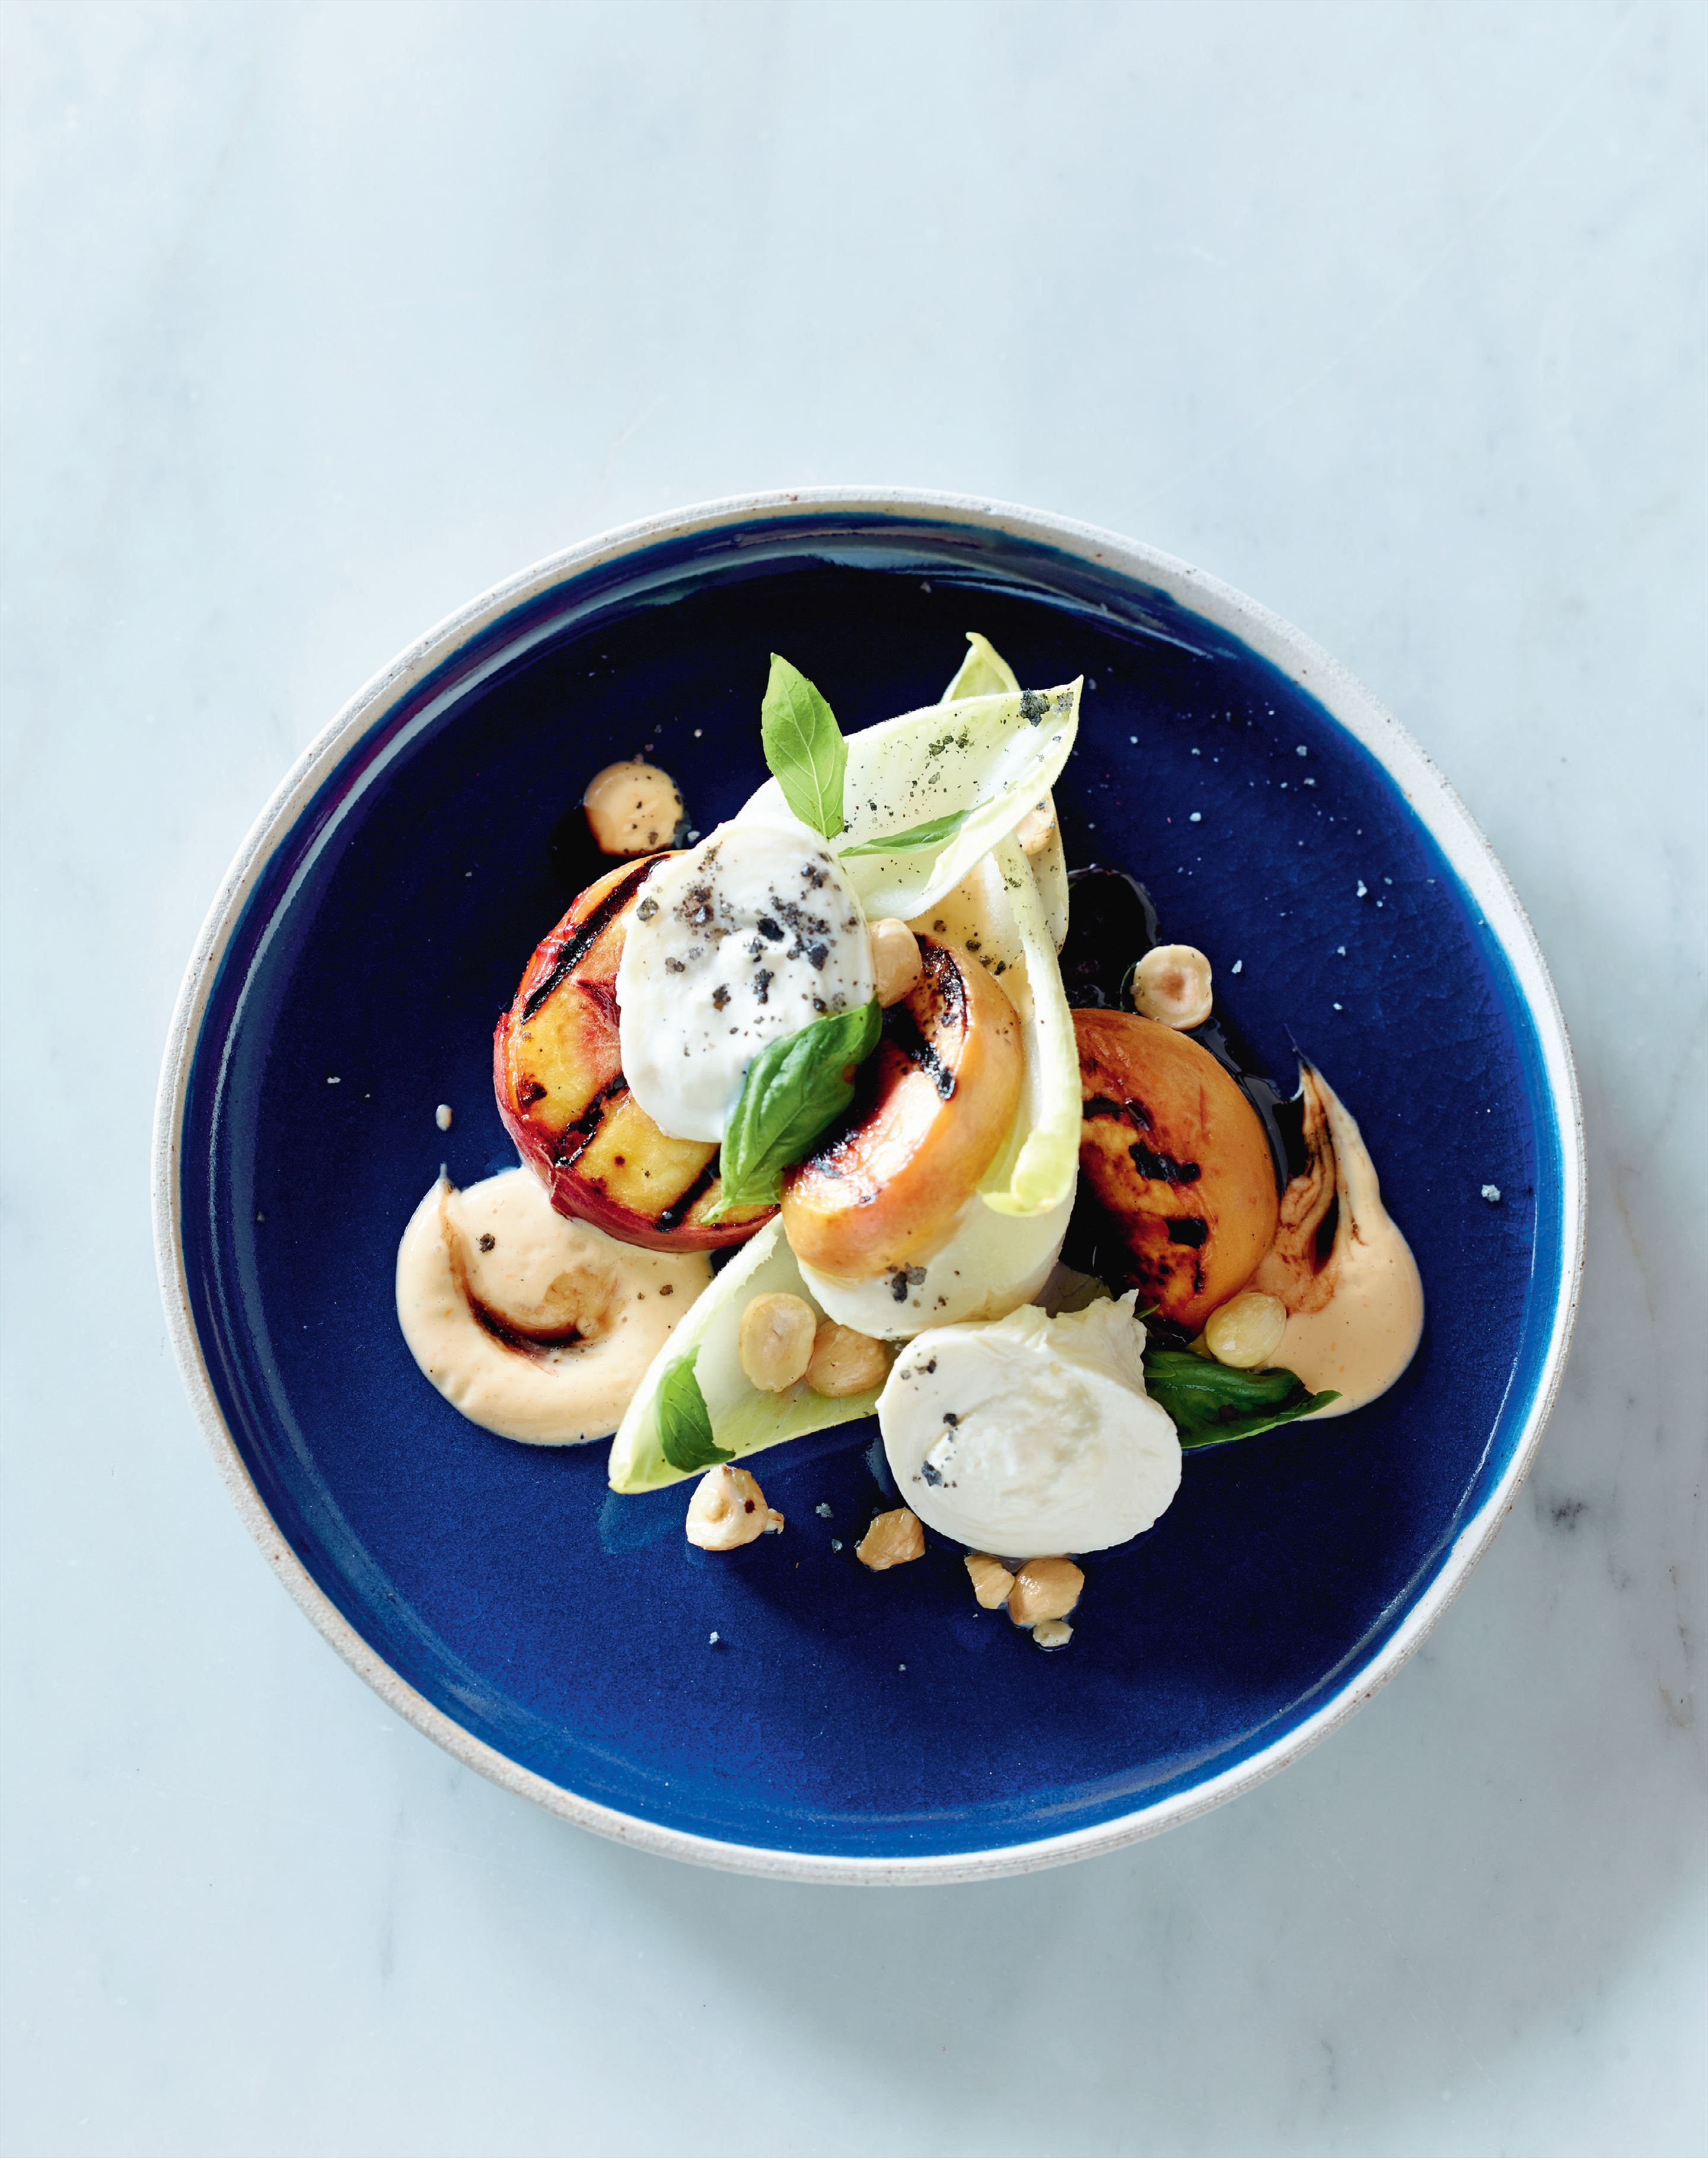 Grilled peach, witlof, burrata, balsamic, hazelnuts